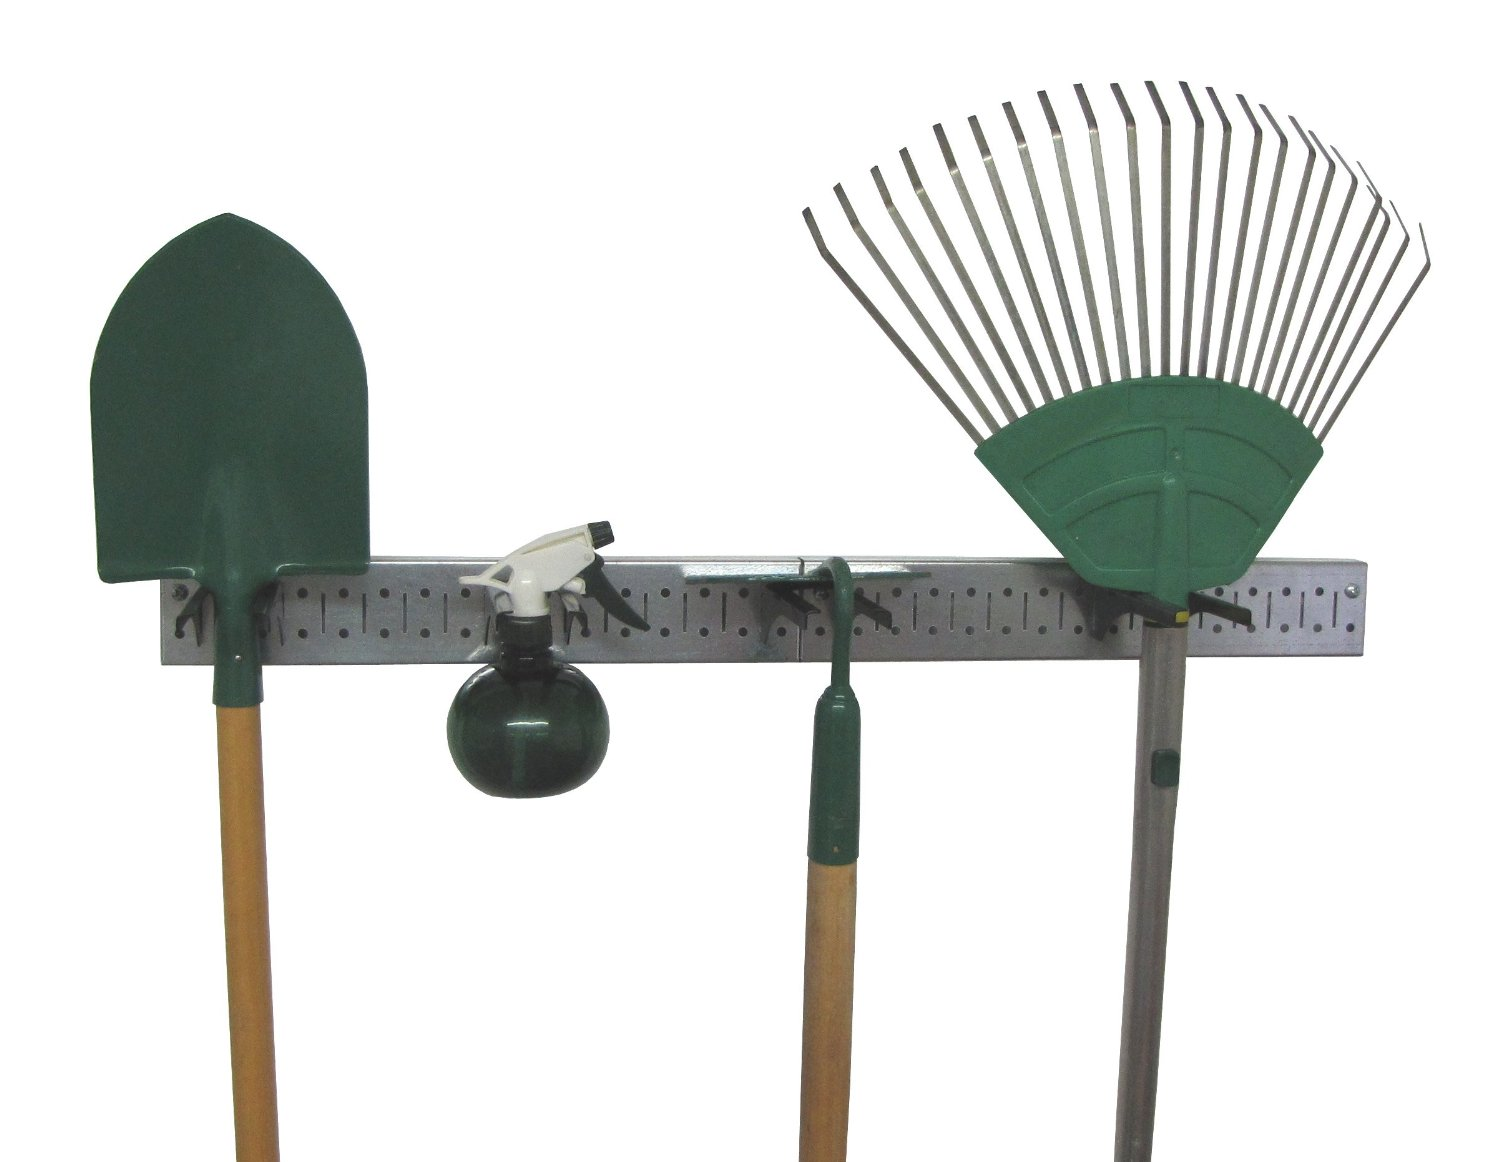 Garden tools organize to simplify for Large garden equipment